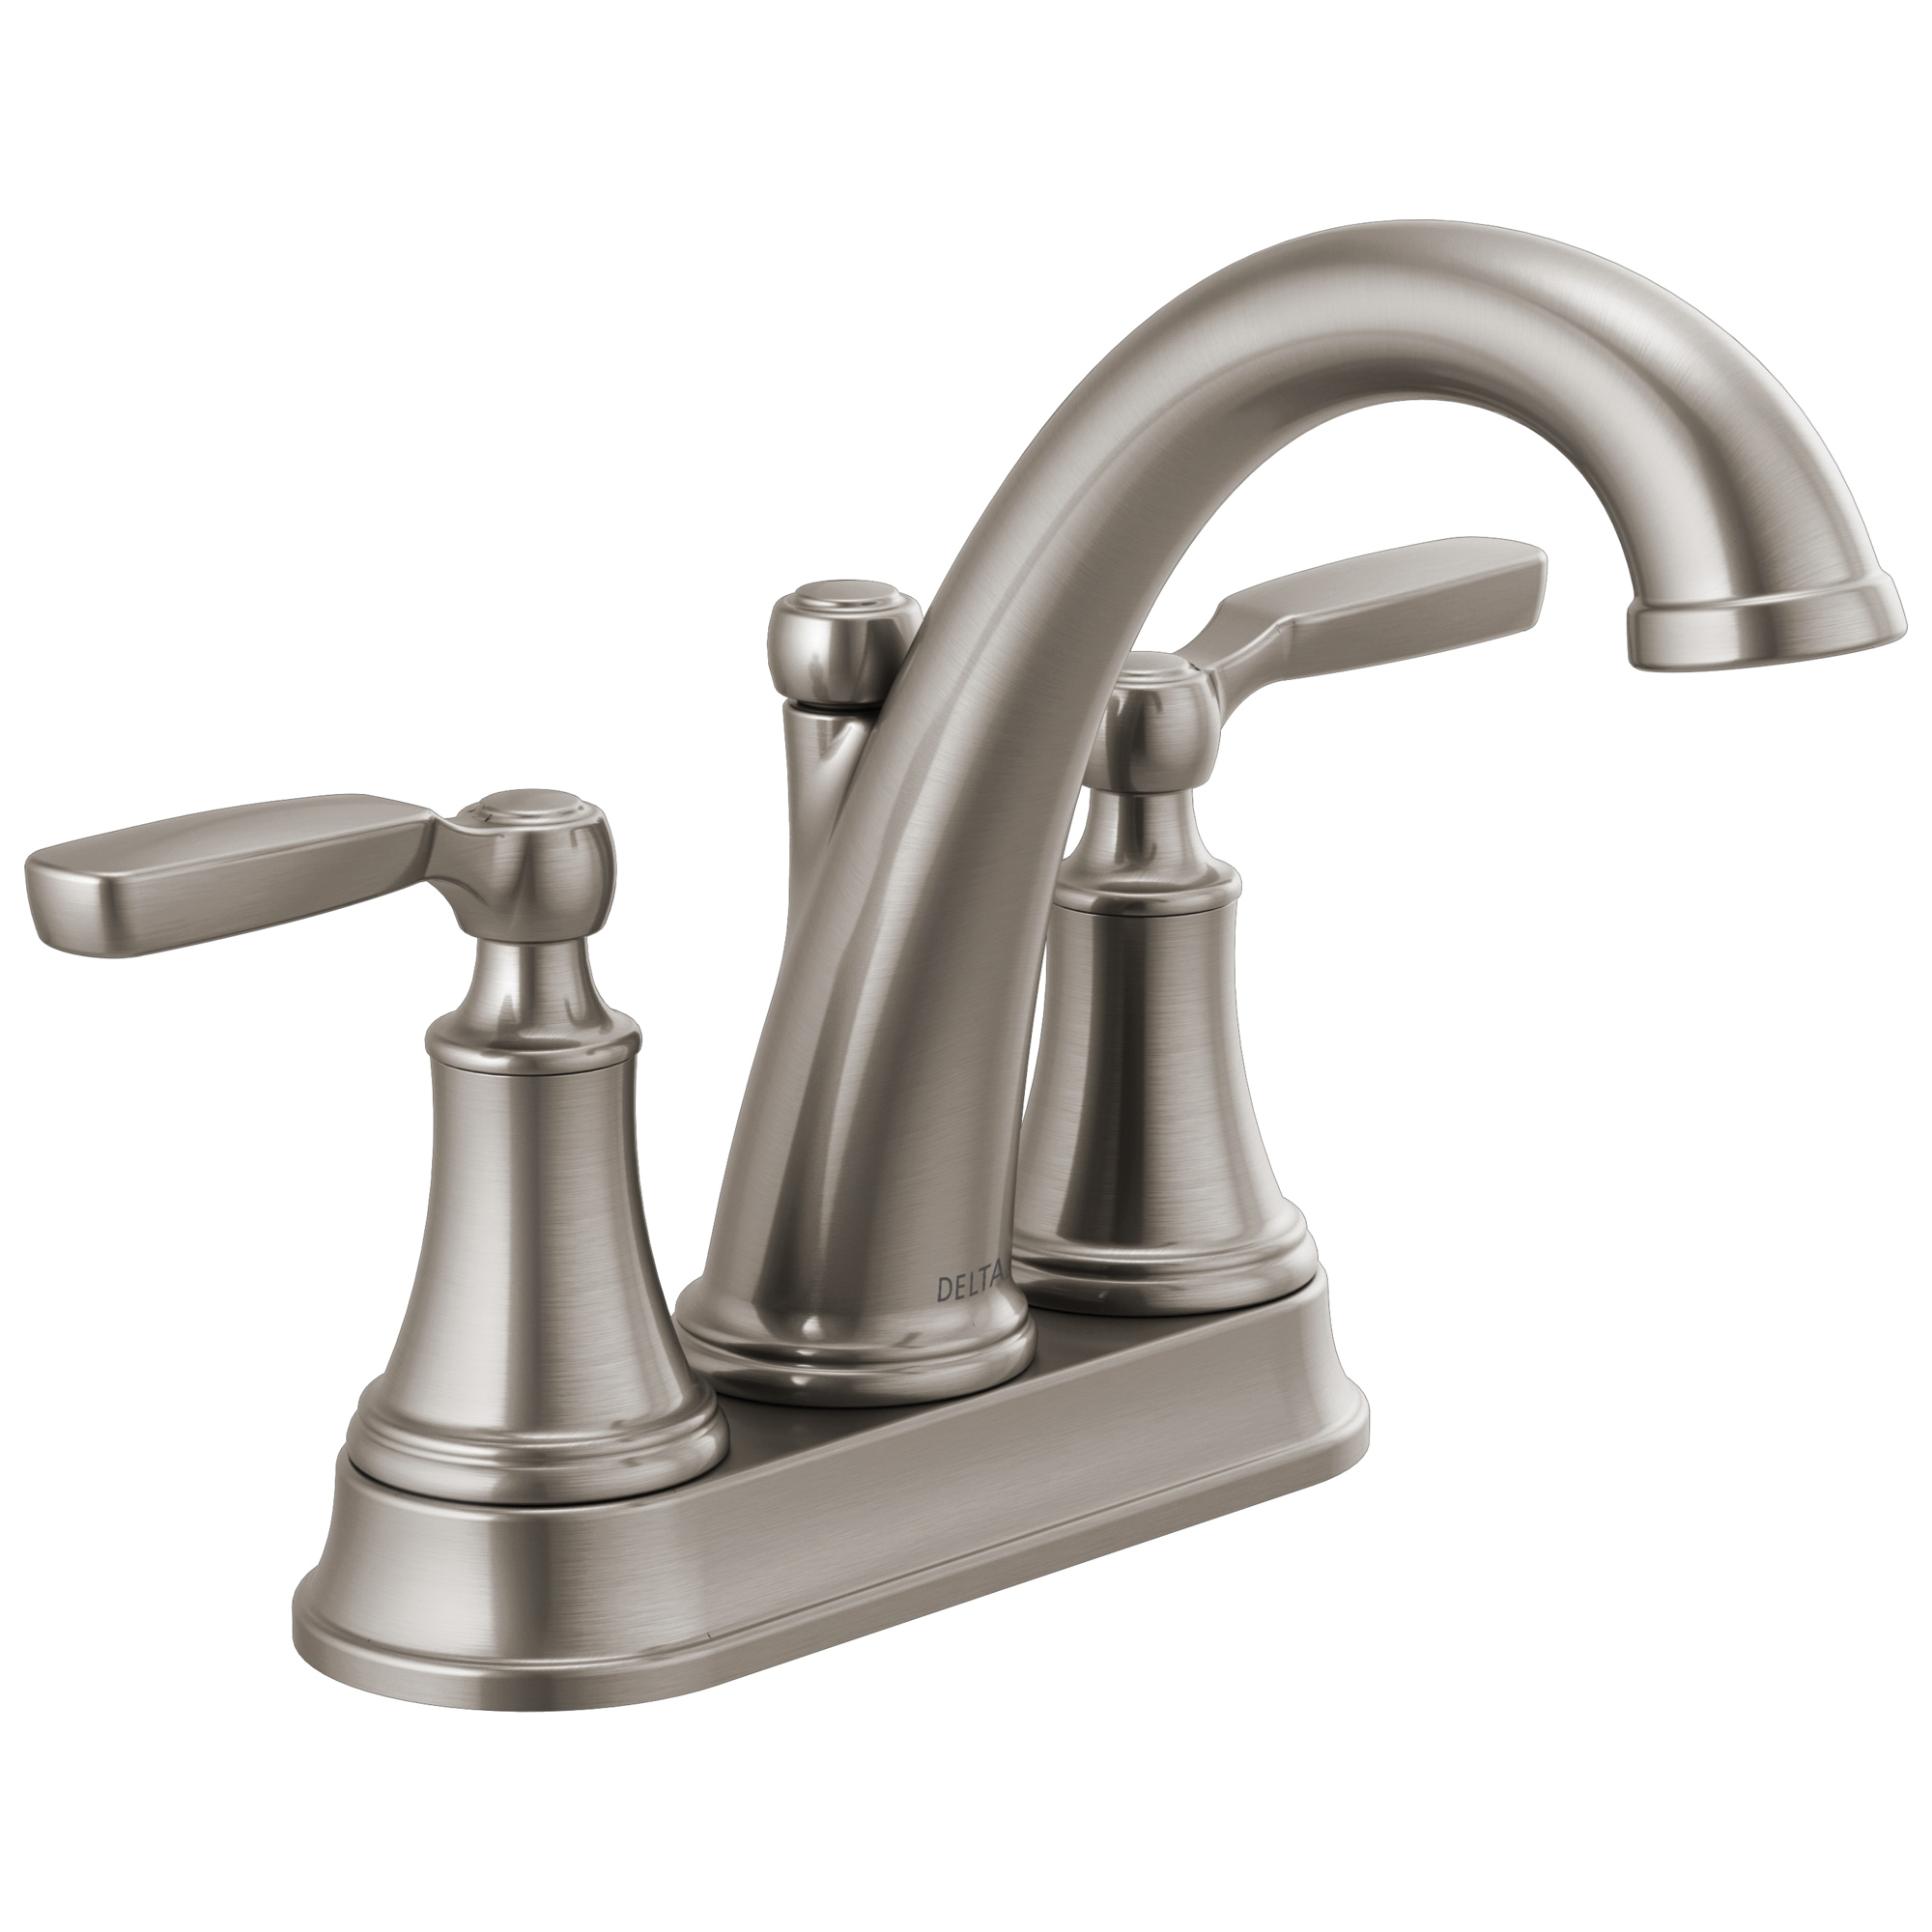 DELTA® 2532LF-SSTP Bathroom Faucet, Woodhurst™, Stainless, 2 Handles, 50/50 Pop-Up Drain, 1.2 gpm